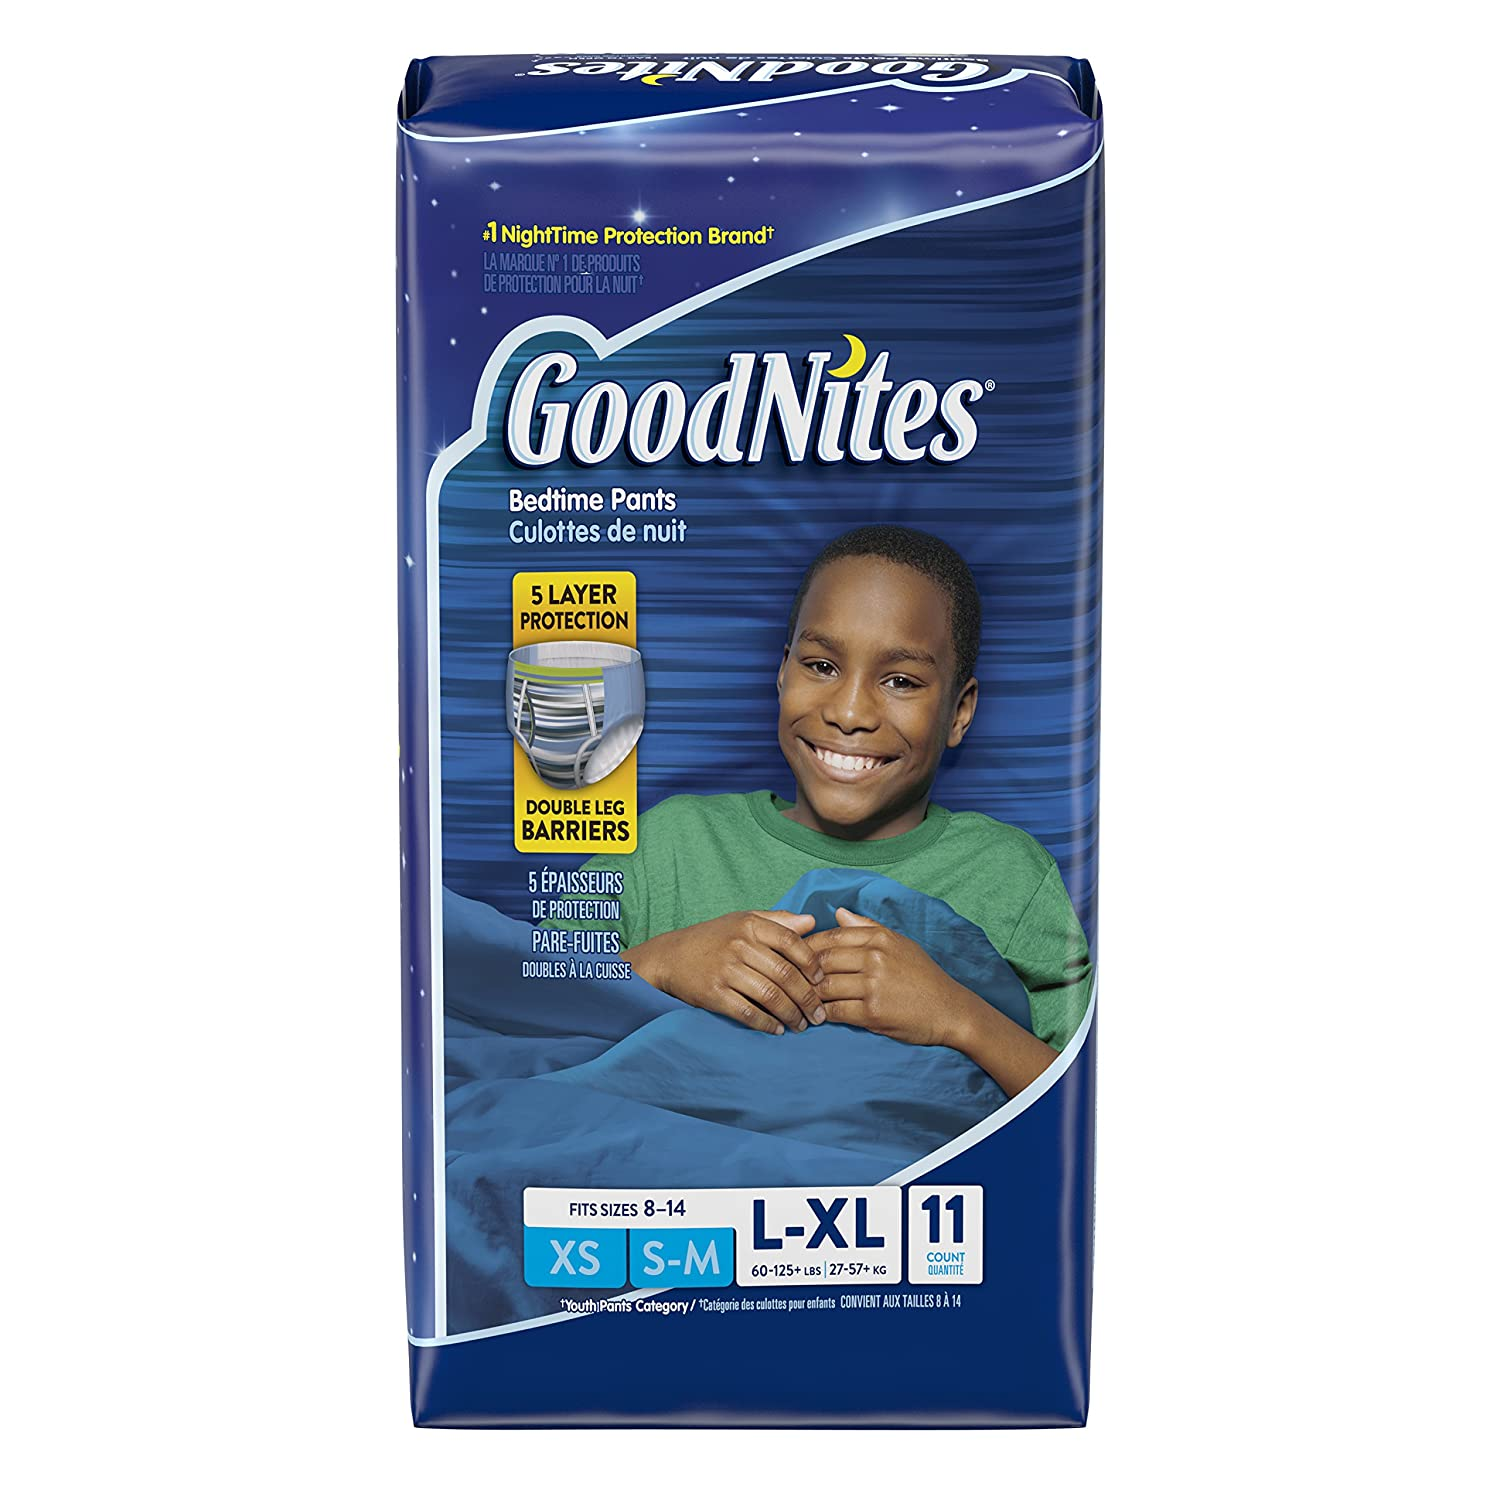 GoodNites Bedtime Bedwetting Underwear for Boys, L-XL, 11 Ct. (Packaging May Vary) Kimberly-Clark 10036000413158